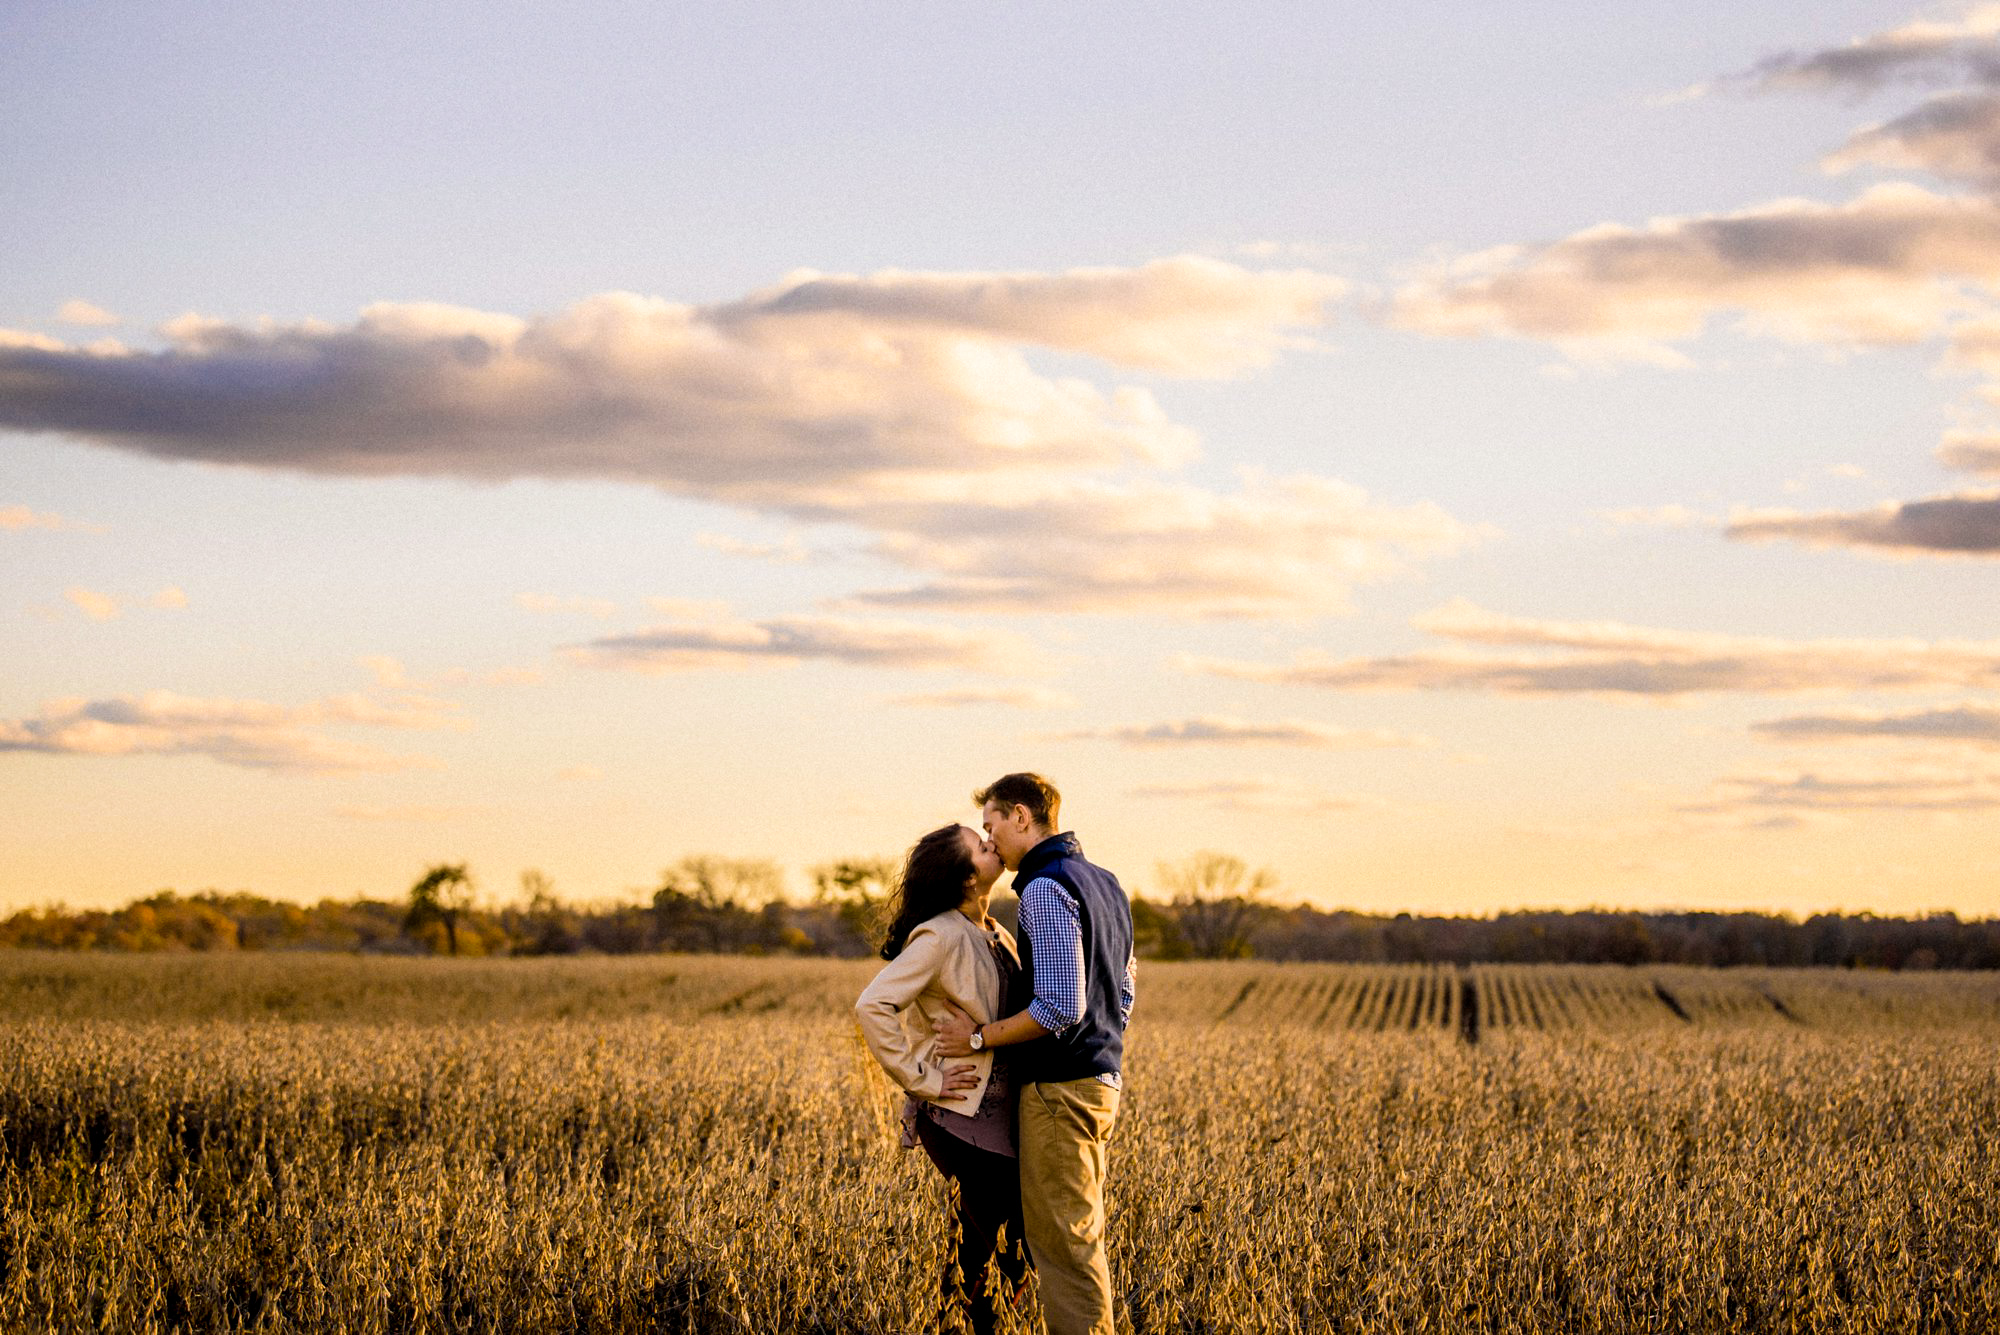 engagement-photography-88-love-stories_0013.jpg